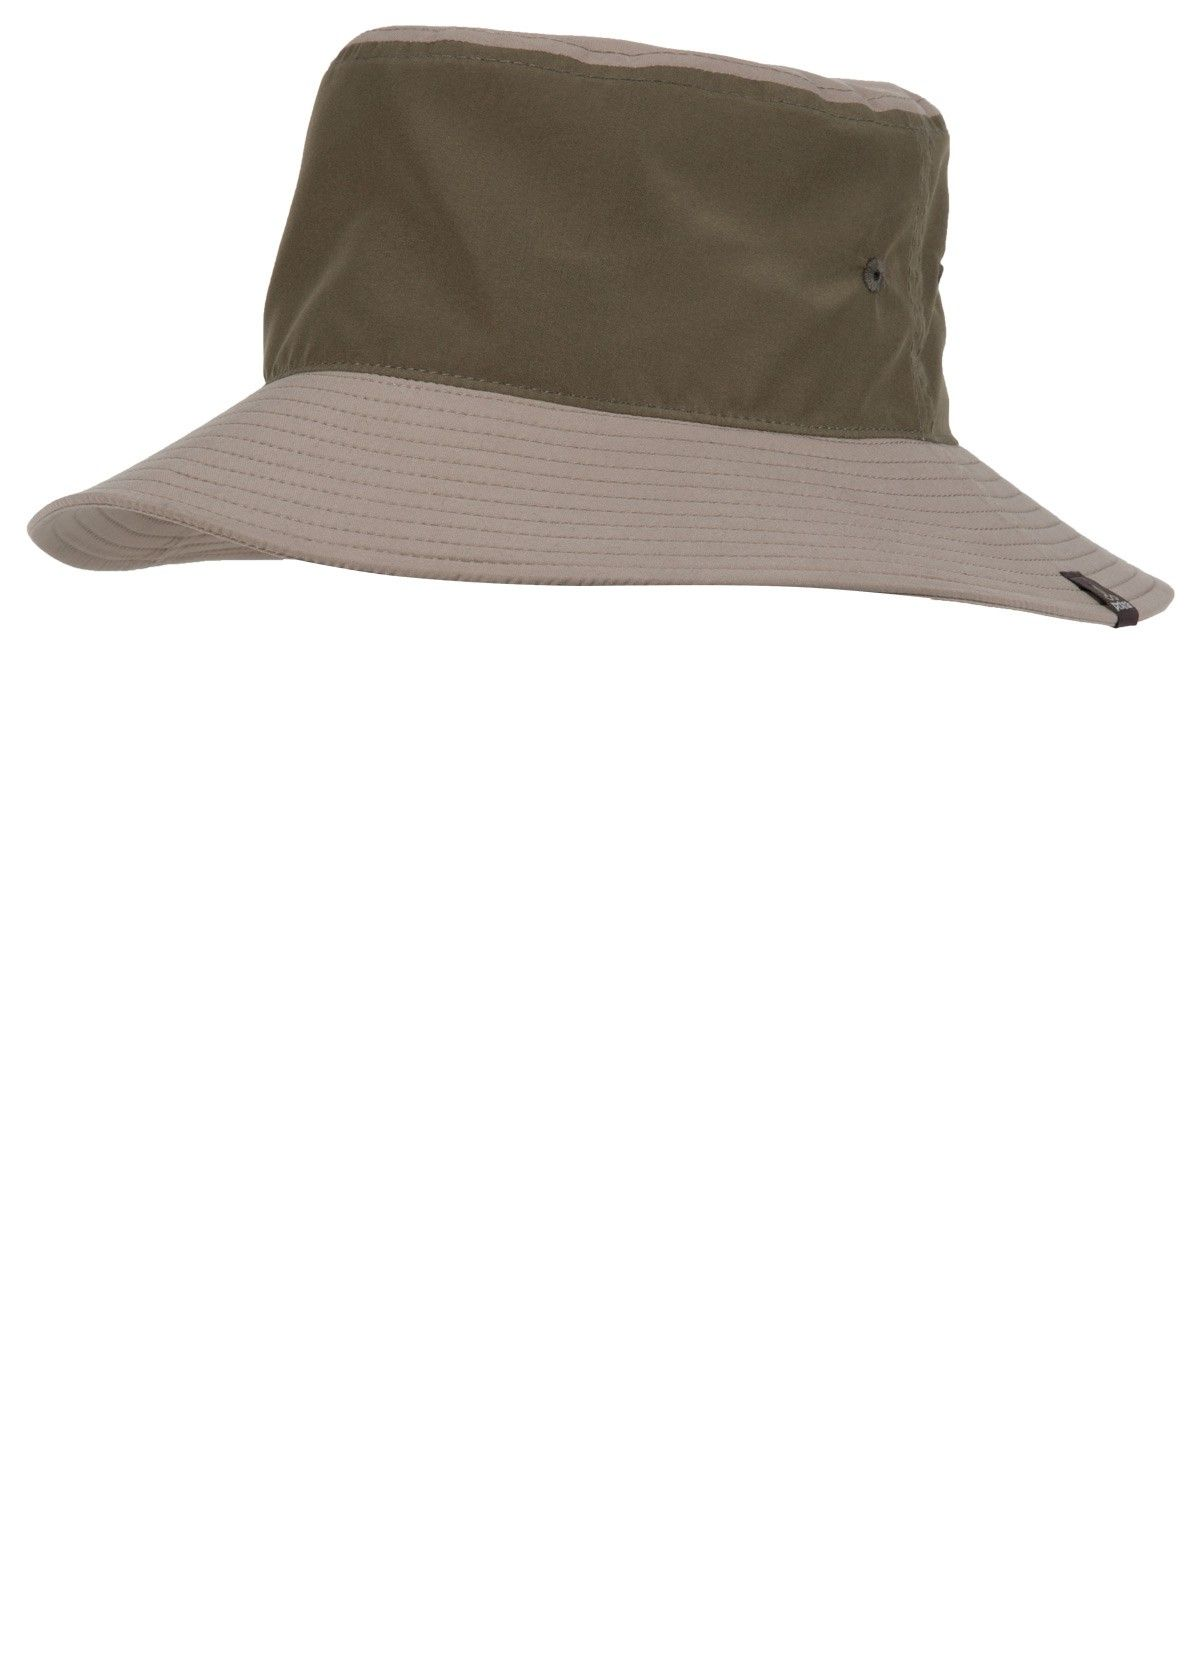 cfe181a3f82 I love the prAna Mojo Bucket! Check it out and more at www.prAna.com ...